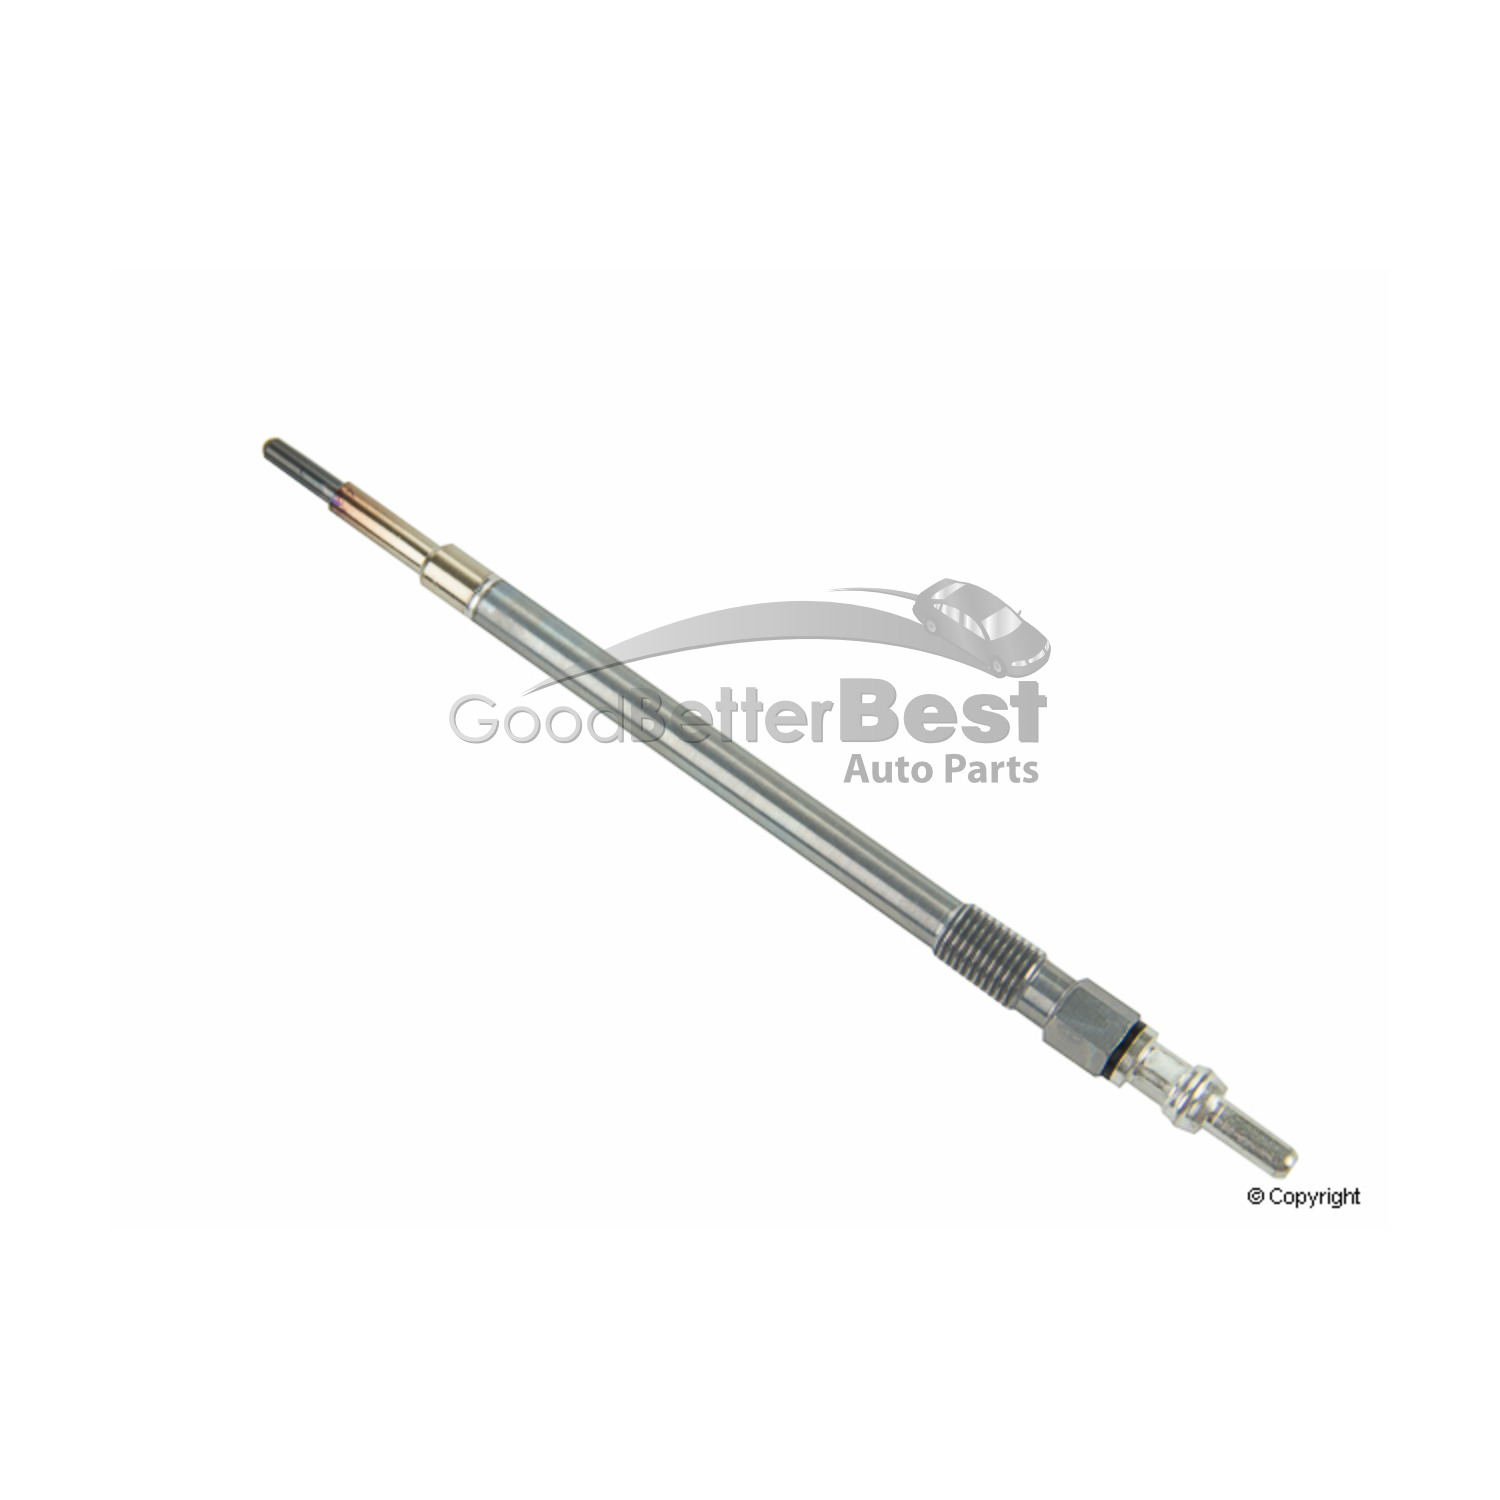 One New Genuinesel Glow Plug For Mercedes